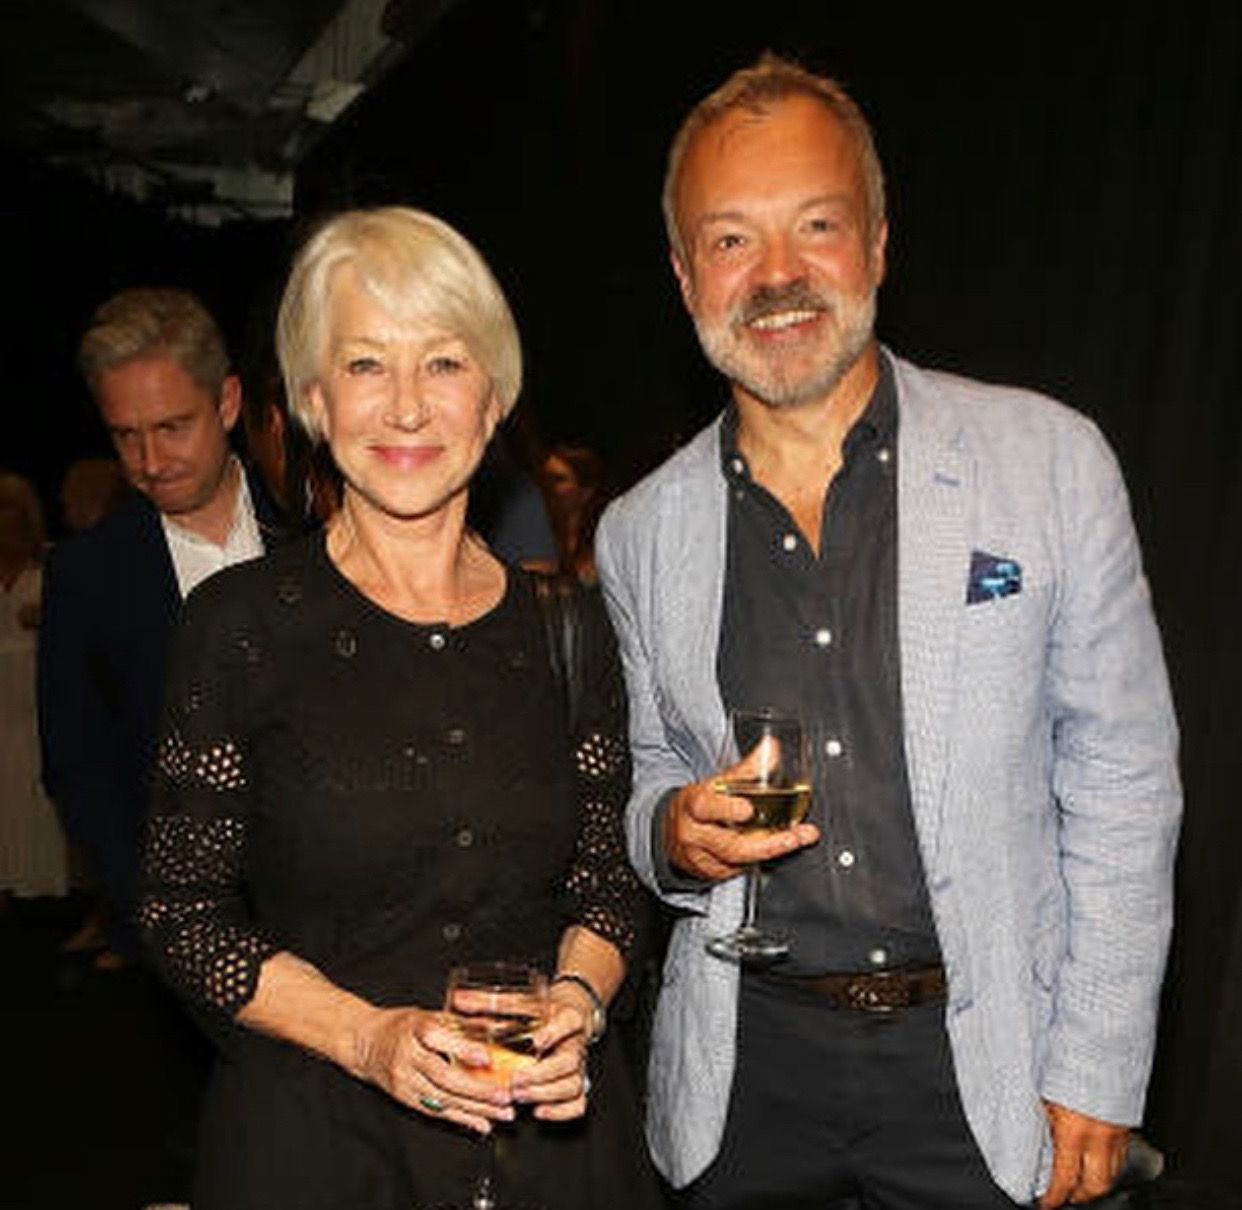 Love Helen Mirren & Graham Norton...  both are amazing, funny, smart and just all-around talented people.